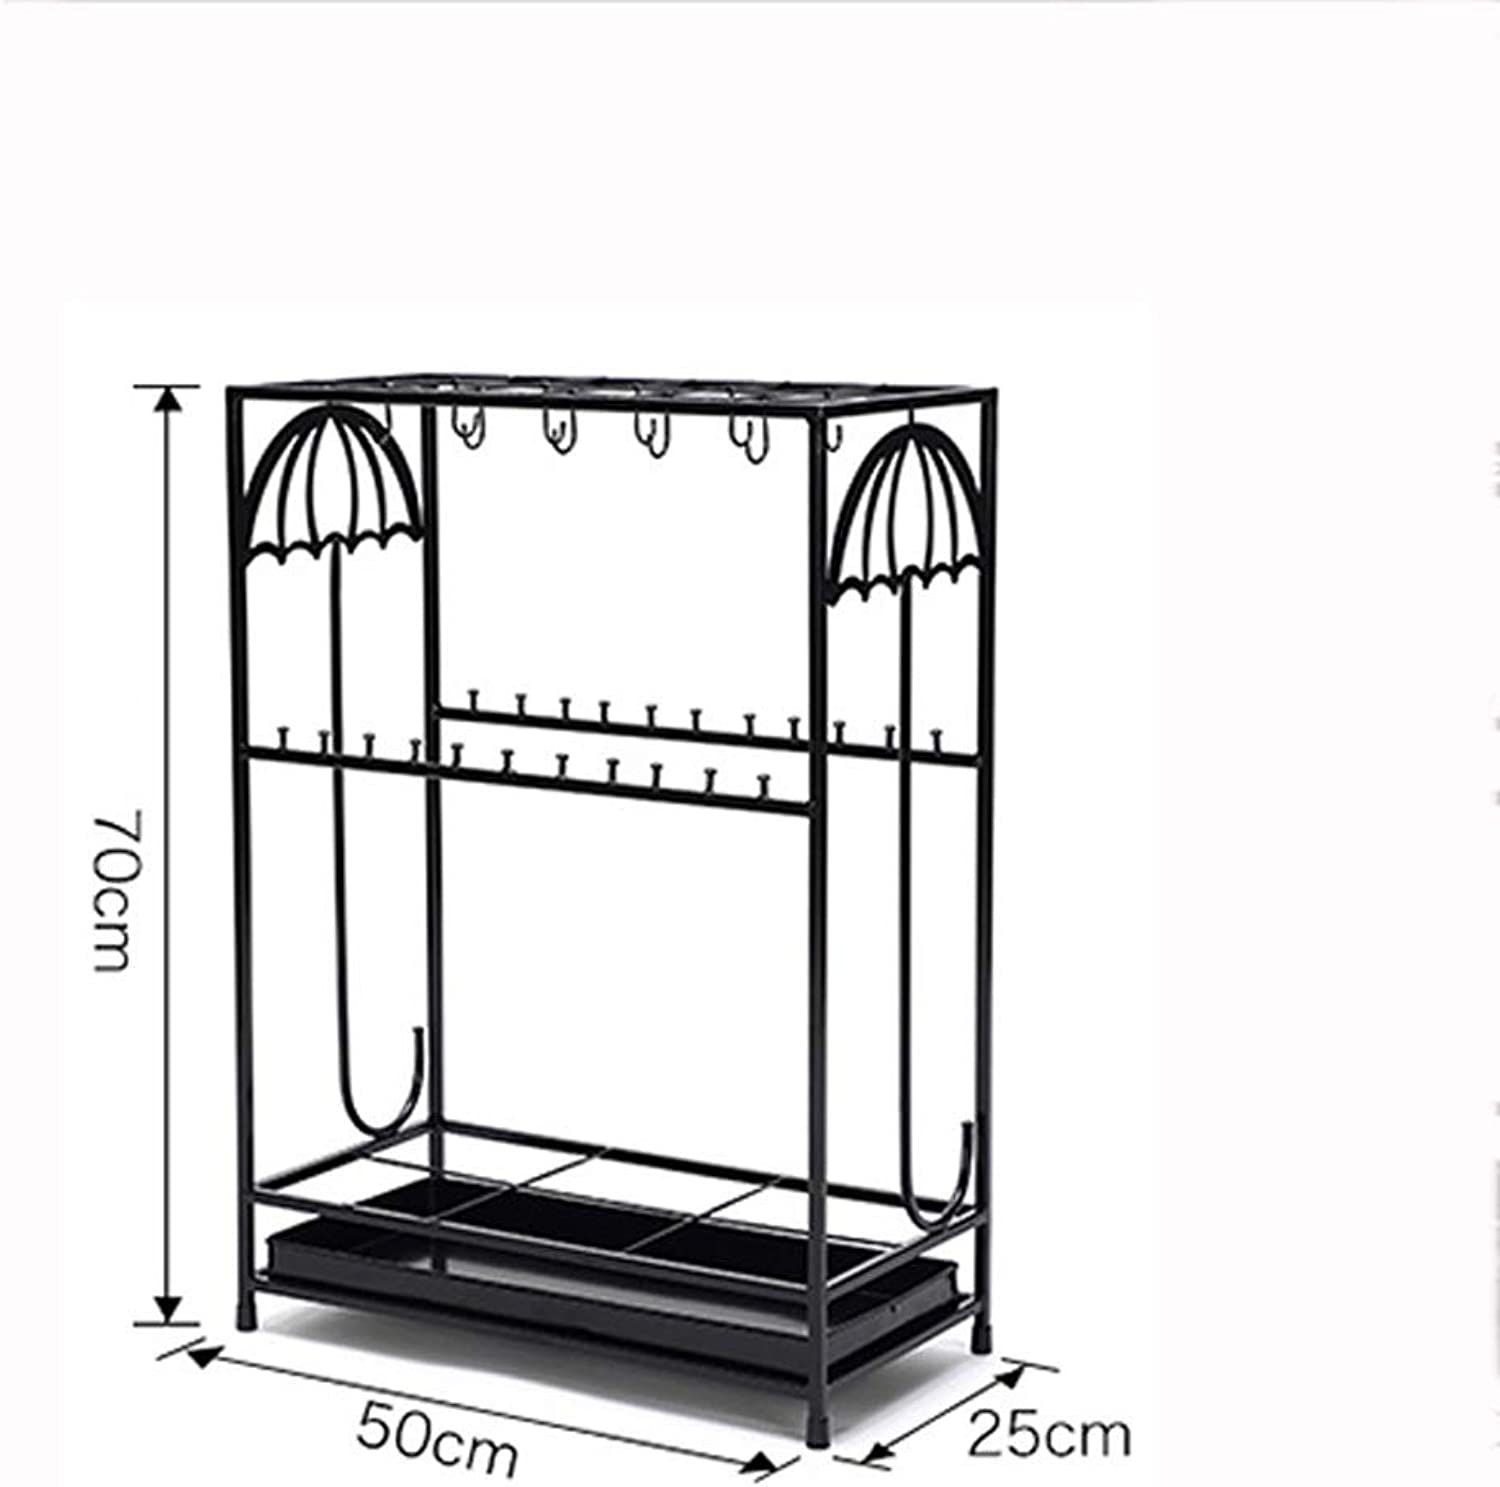 Lsxlsd Iron Umbrella Stand Hotel Lobby Home Creative Floor-Mounted Rain Gear Umbrella Placed Storage Rack Umbrella Stand.